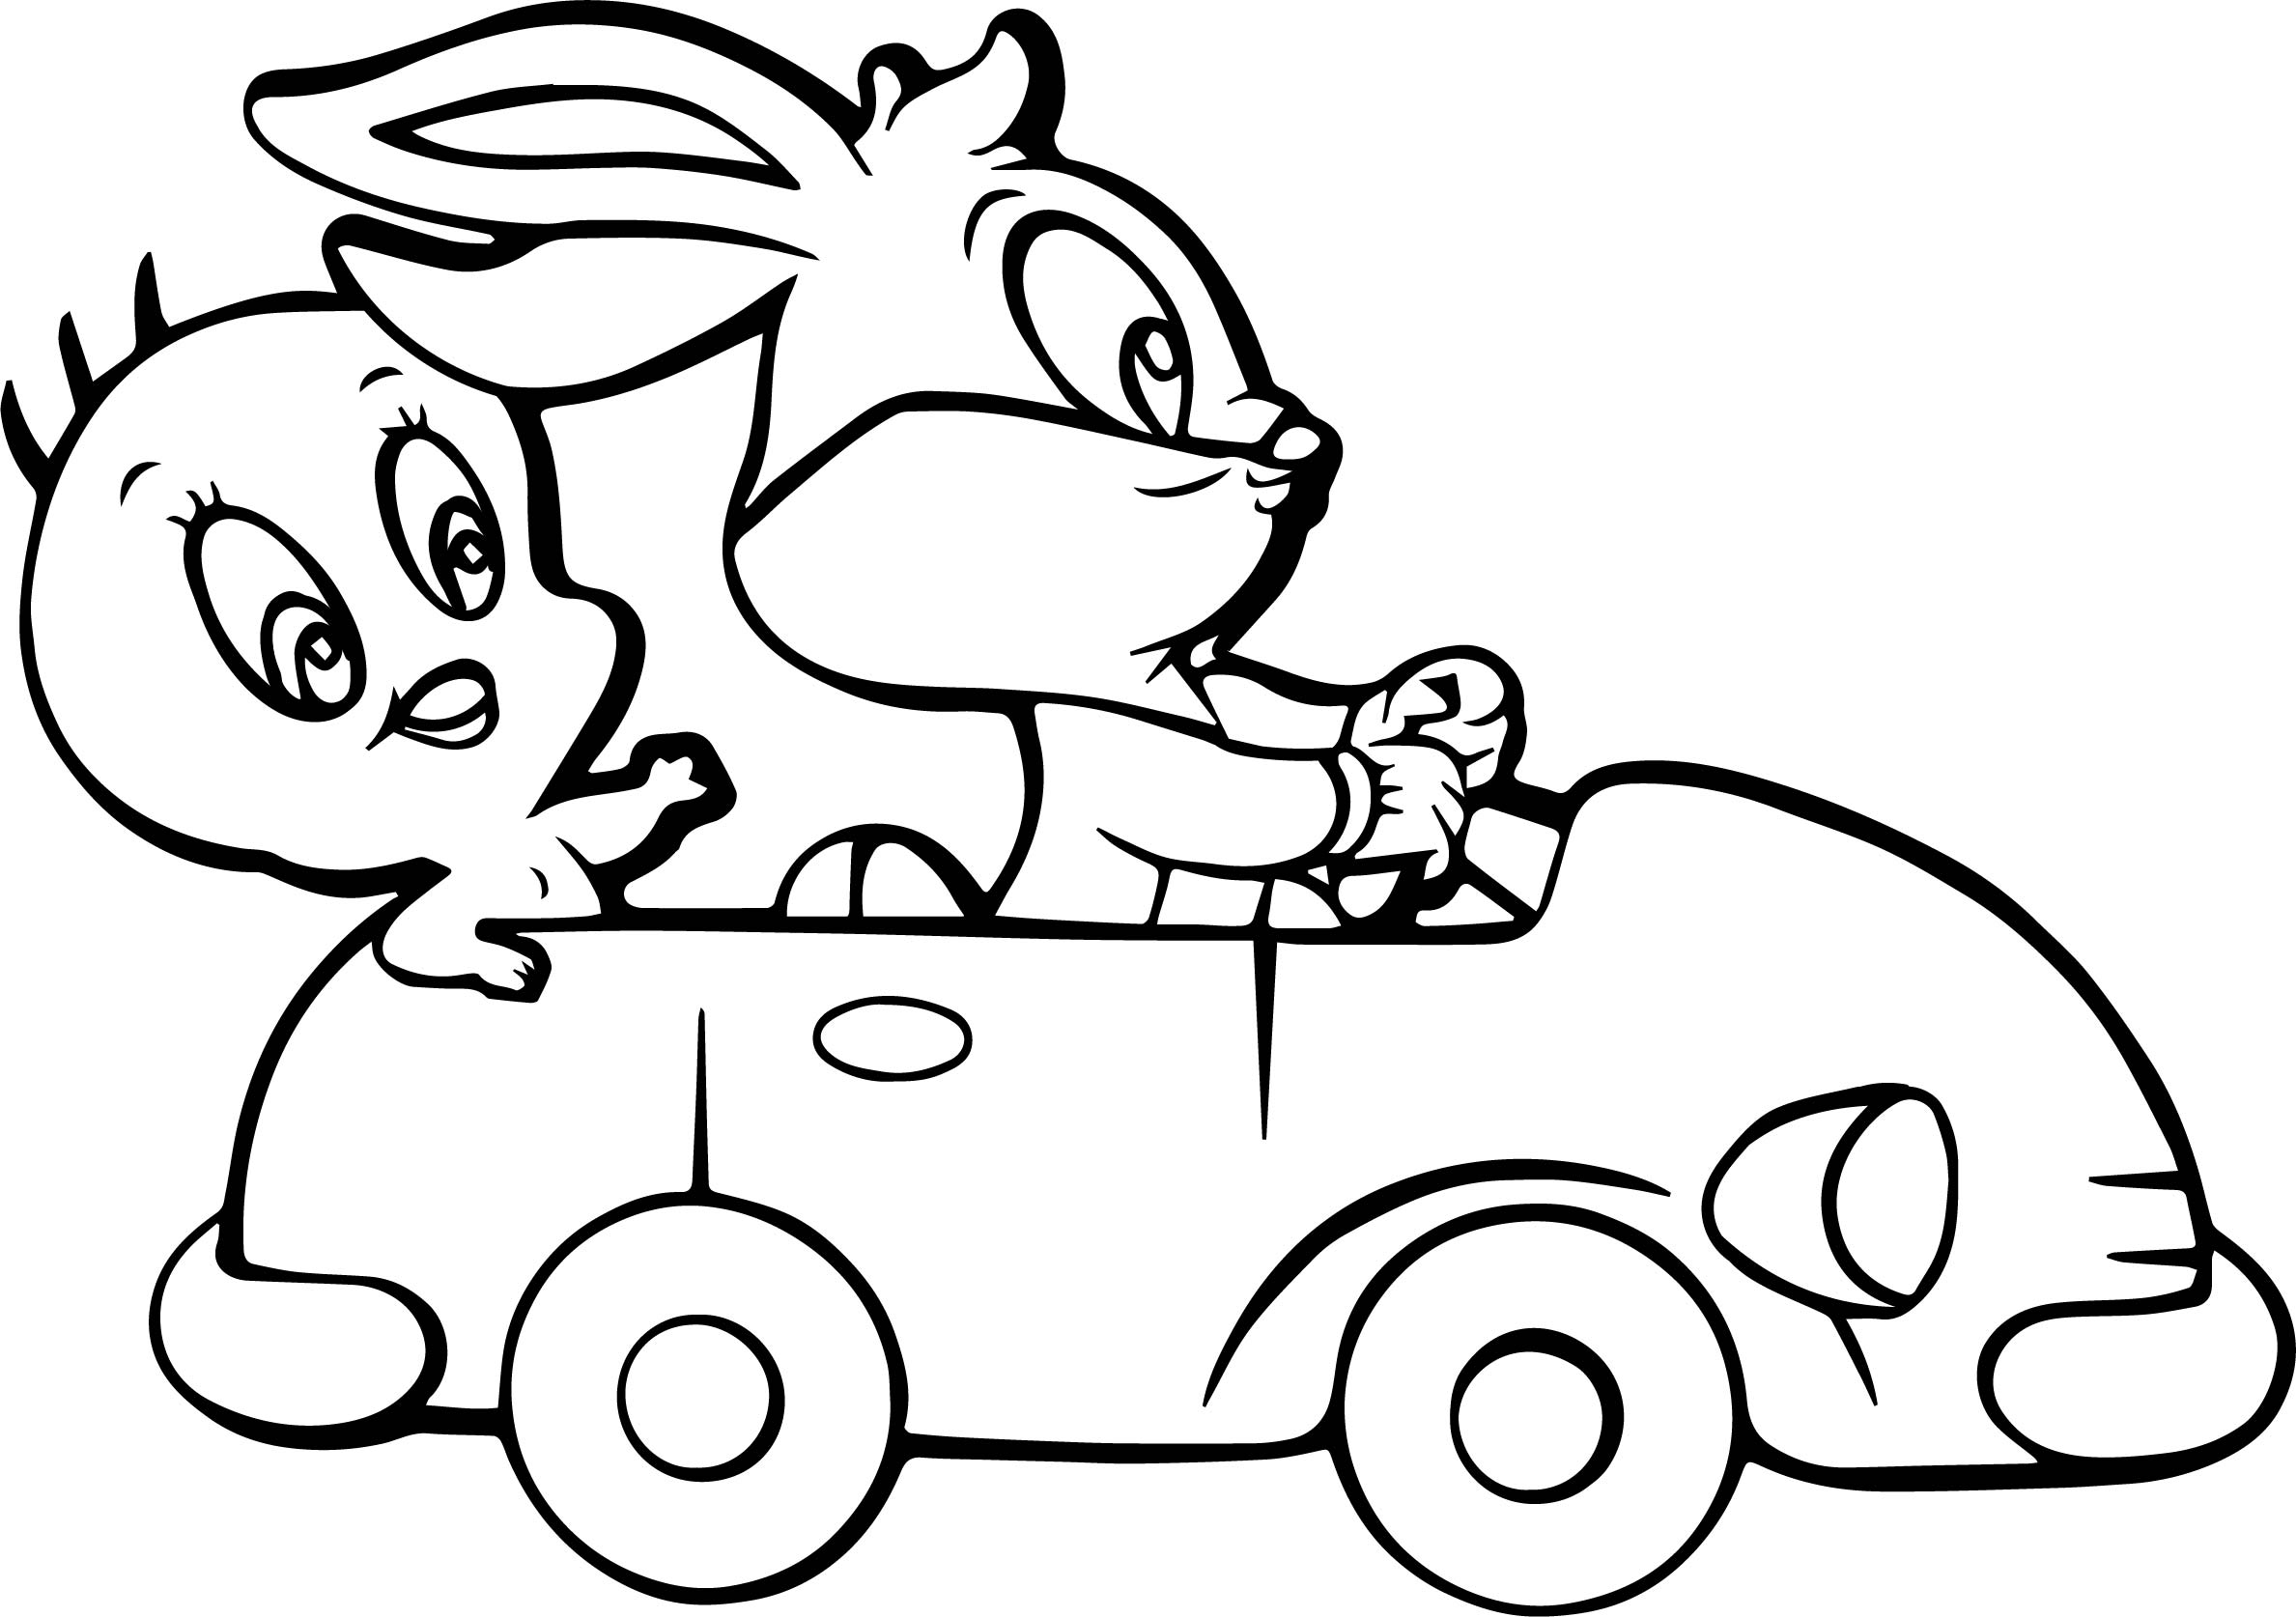 tweety and bugs bunny coloring page wecoloringpage